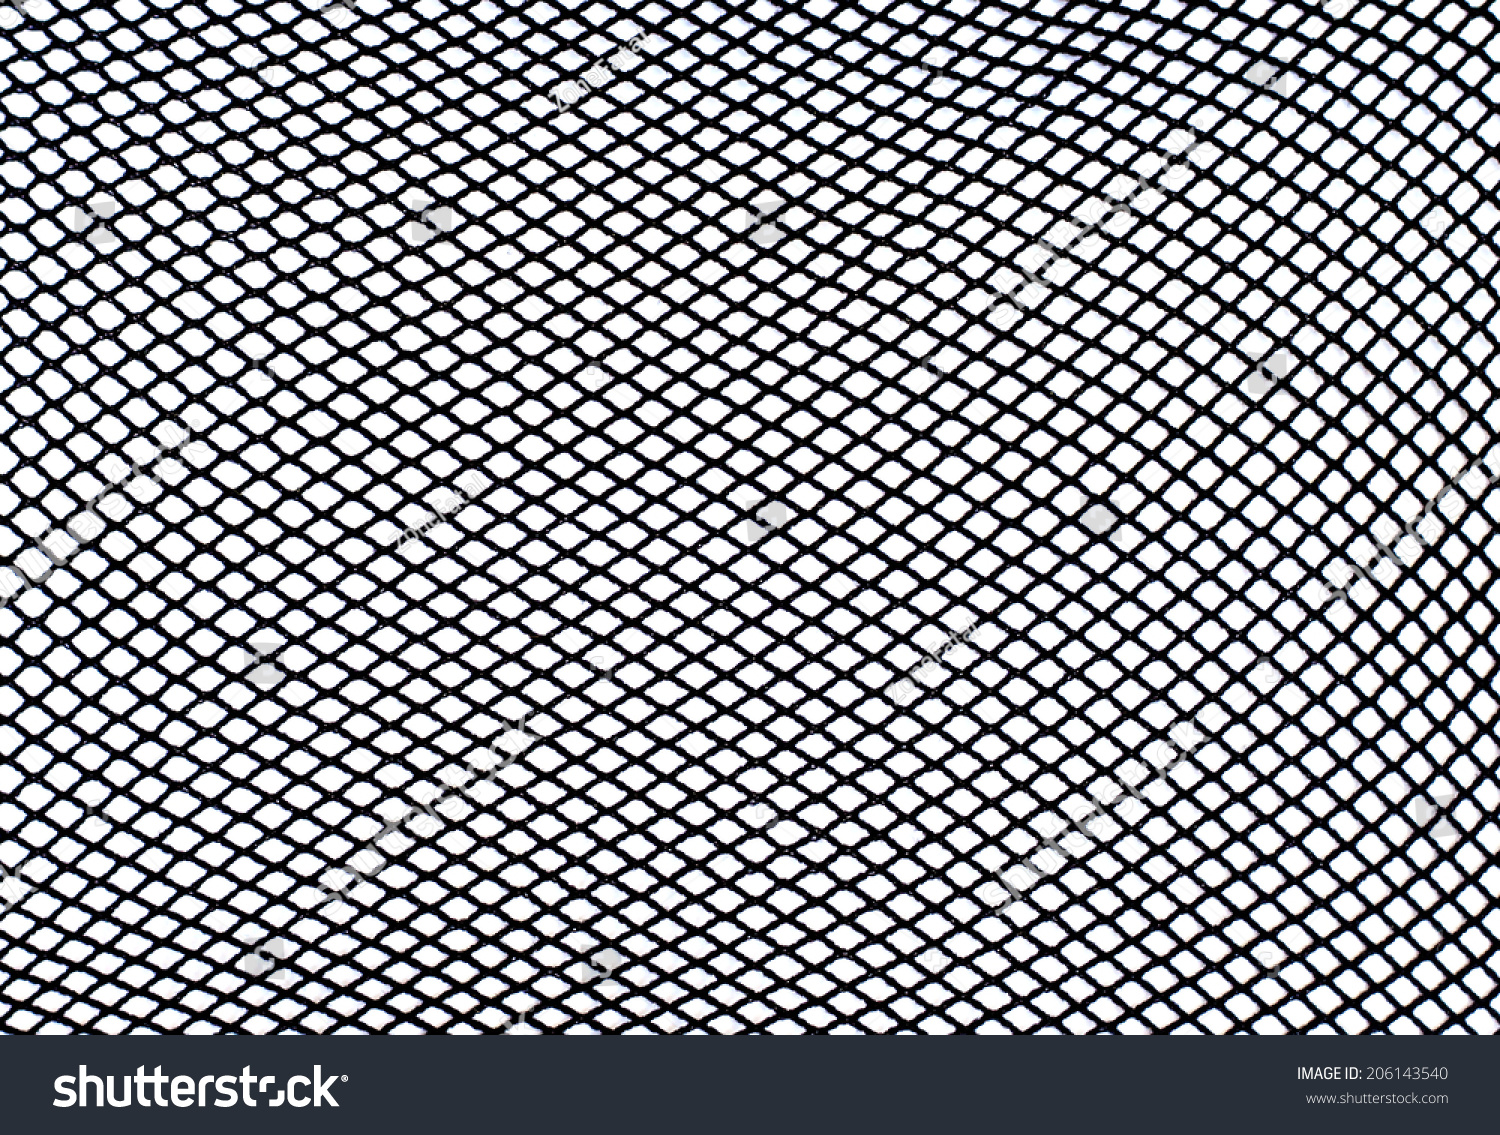 Fishnet Texture Png (112+ images in Collection) Page 3.